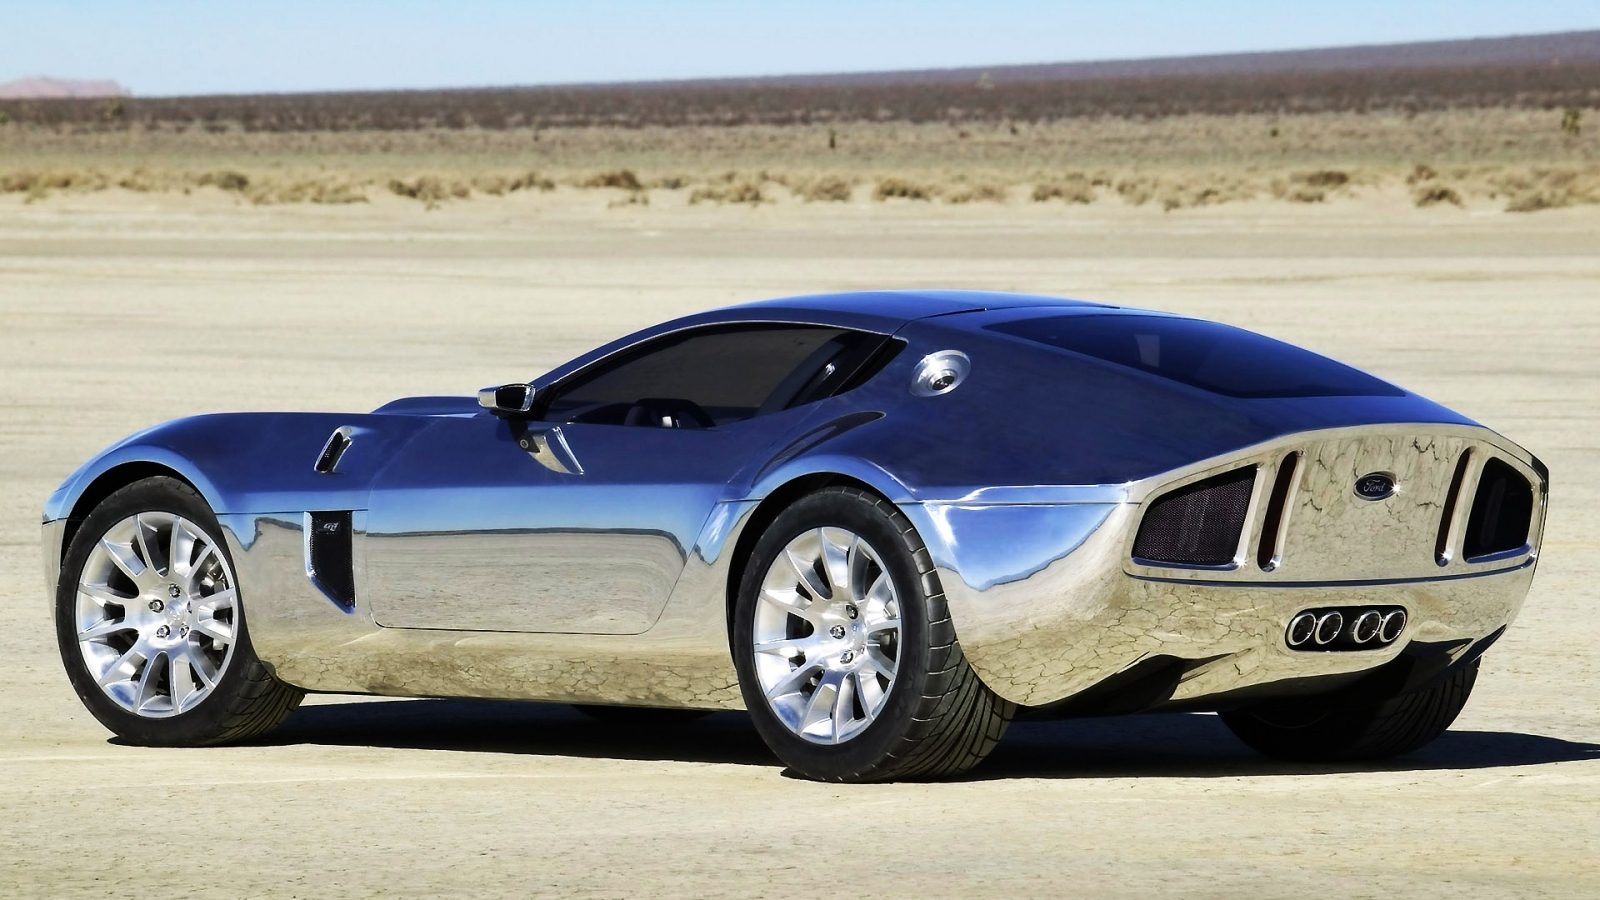 ford-shelby-gr-1-concept-1600x900-wallpaper-1021.jpg